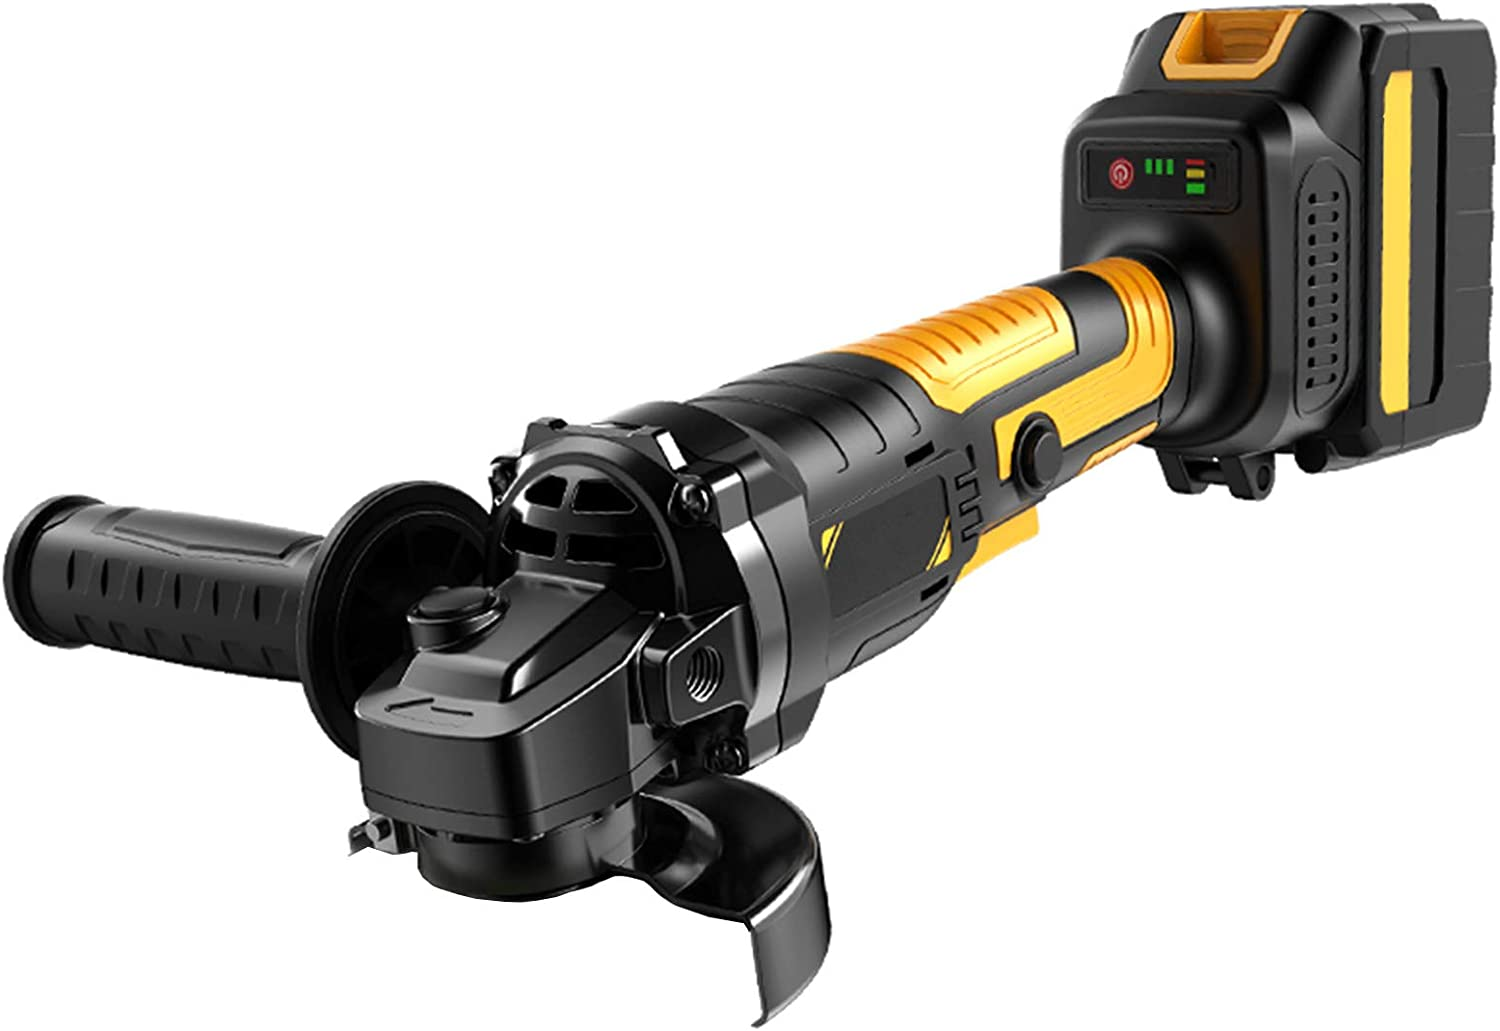 LHLYL-DP Lithium Electric Angle Rechargeable Brushless Grinder Max El Paso Mall 63% OFF